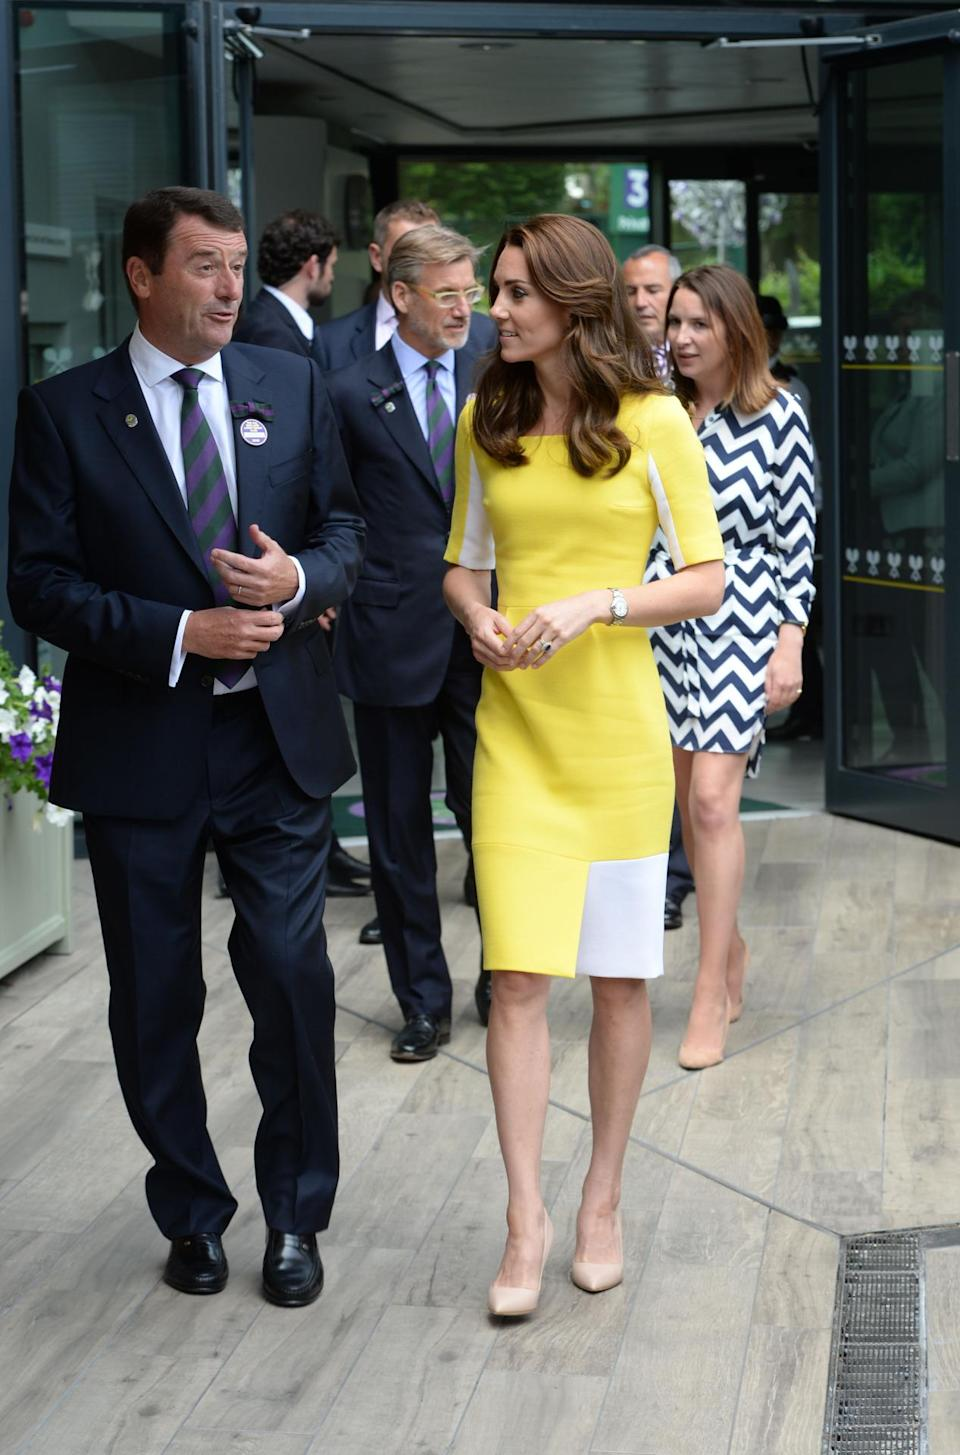 <p>Standing out in a striking lemon get-up by Roksanda Ilincic, Kate attended another Wimbledon date. The Duchess called this the banana dress after William told her she resembled the fruit.</p><p><i>[Photo: PA]</i></p>